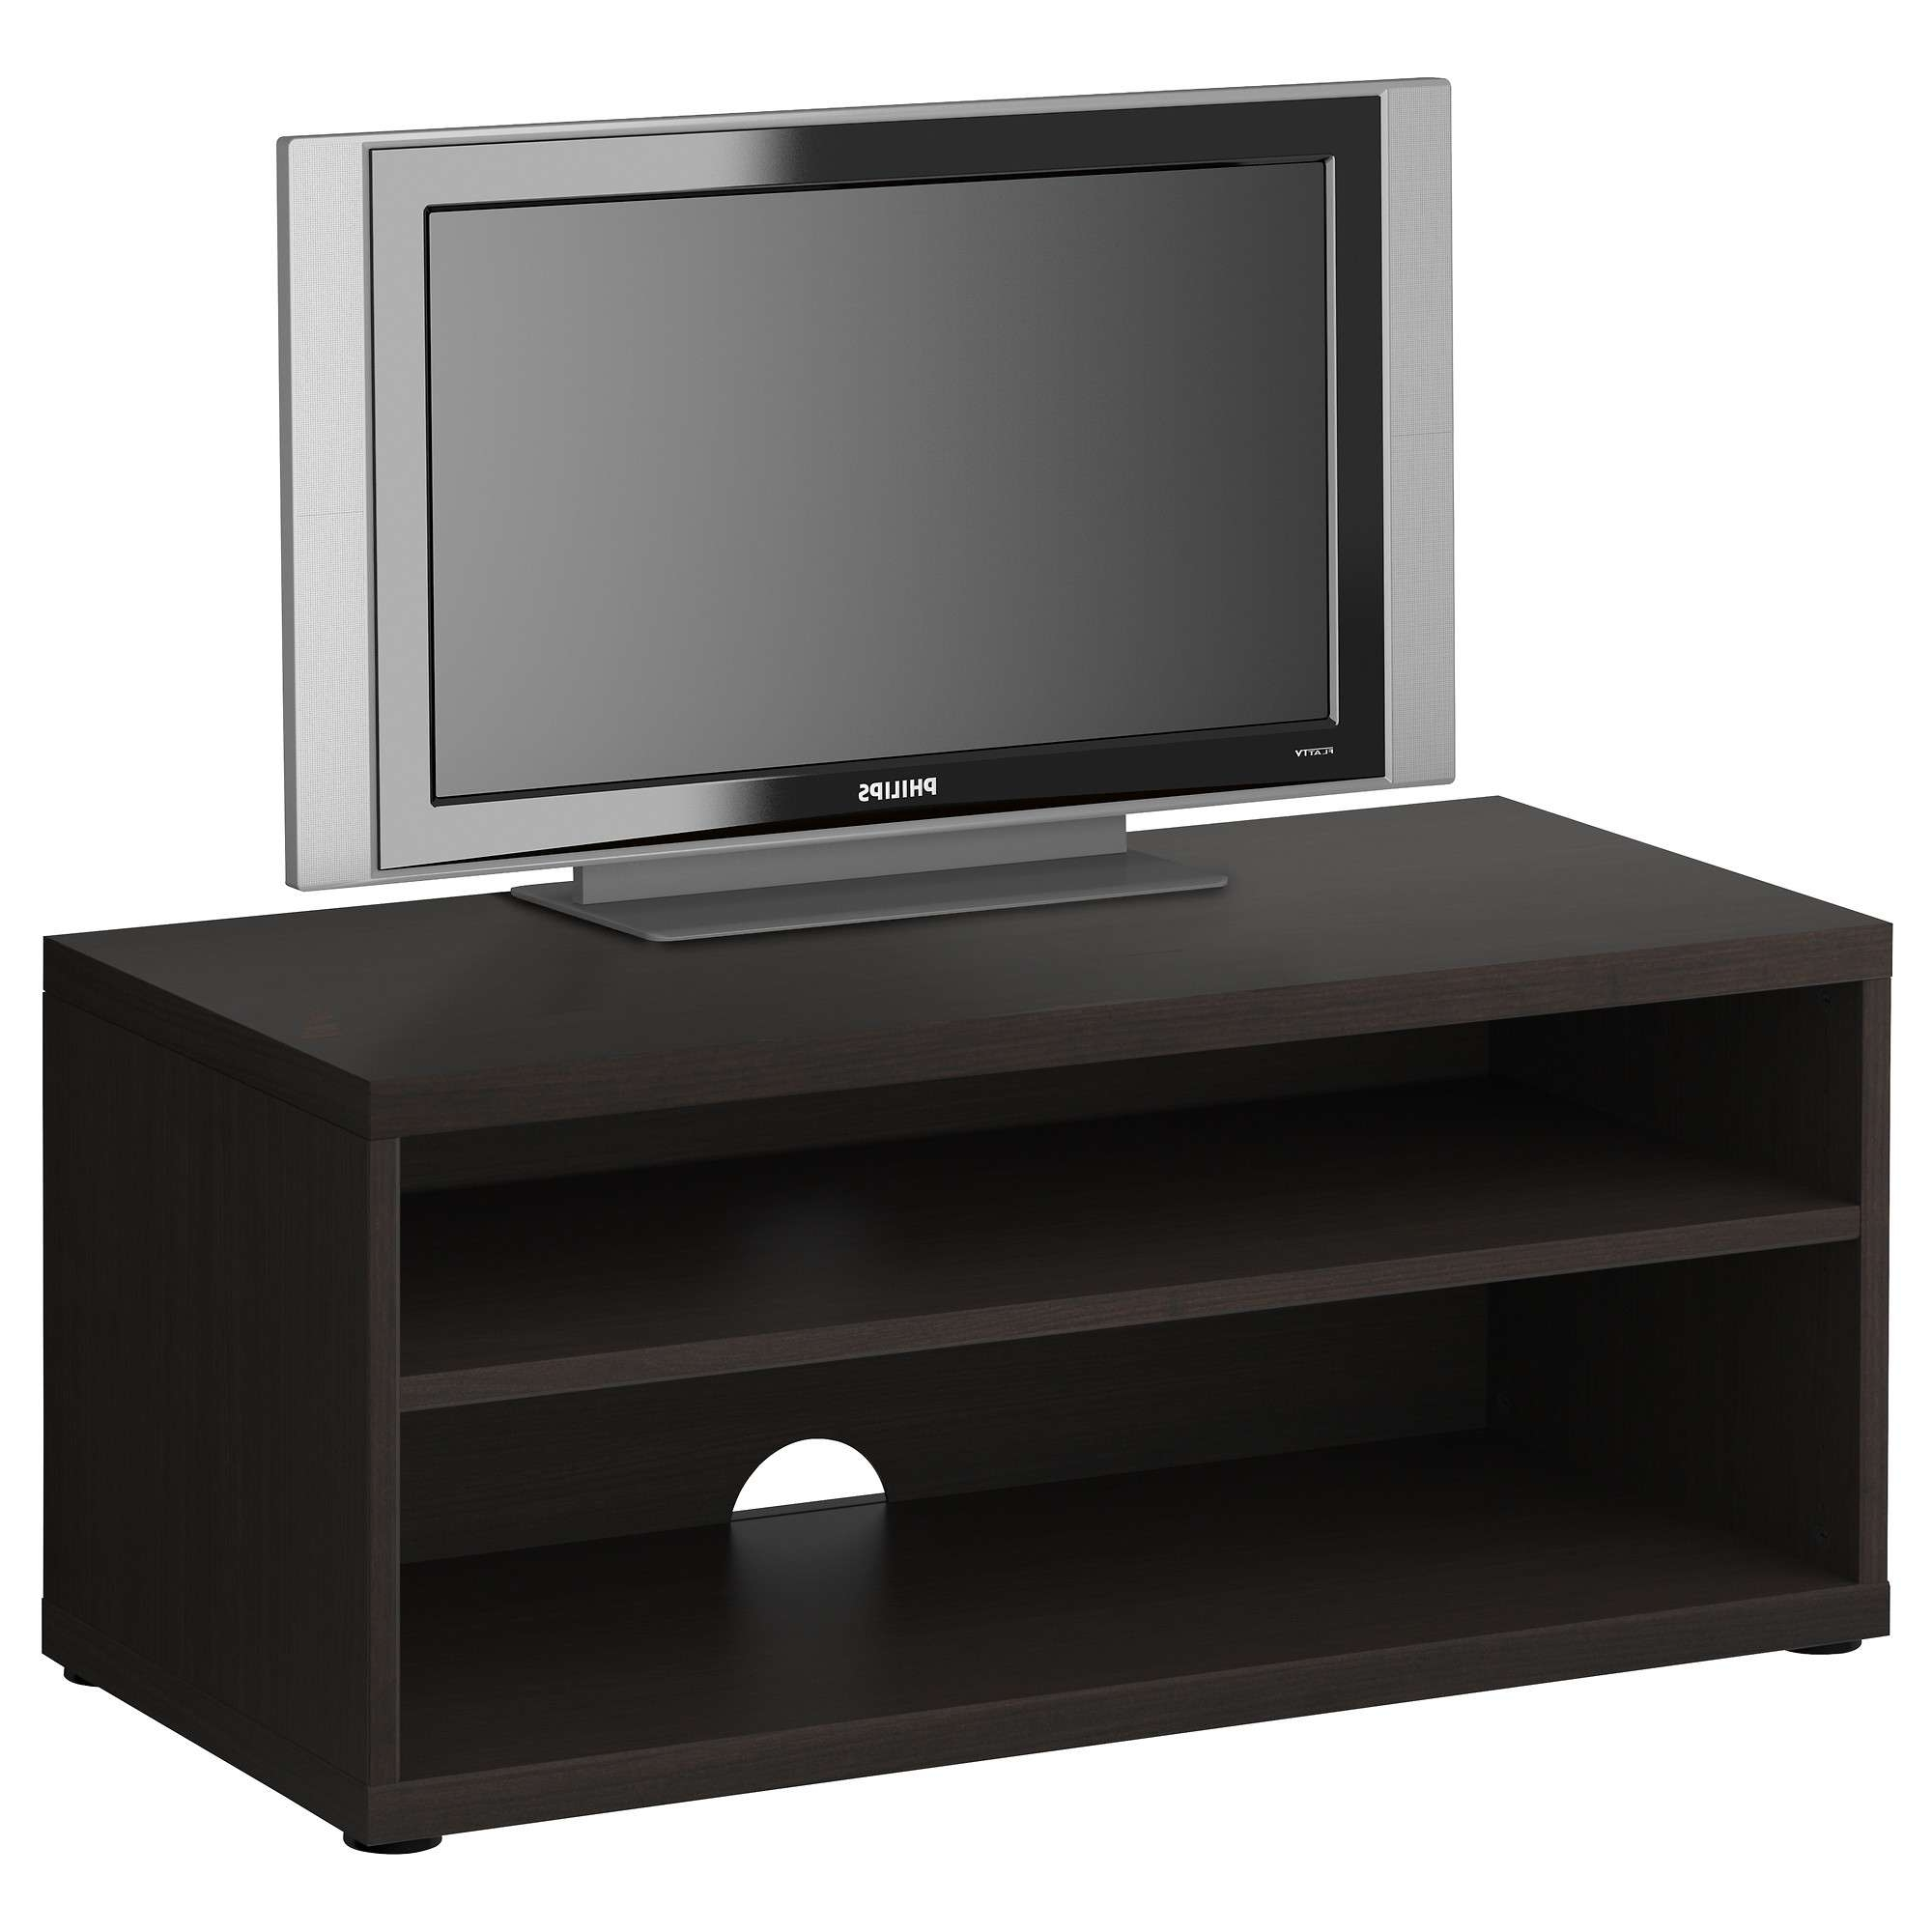 Tv Stands & Tv Units | Ikea Inside Small Tv Stands For Top Of Dresser (View 15 of 15)